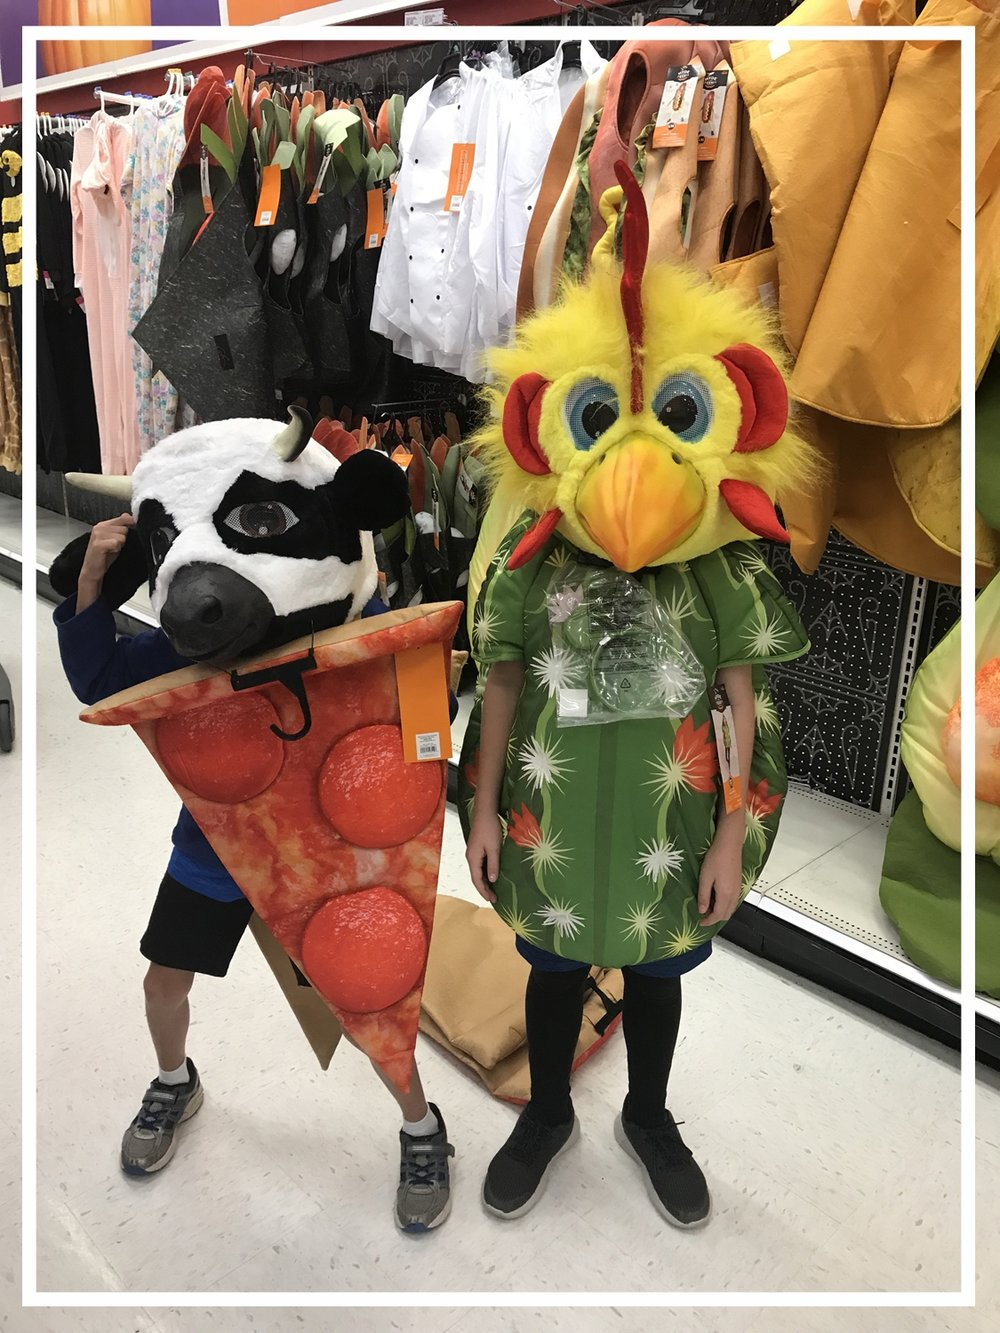 7 Tips to Recycle and Organize Your Halloween Costumes - Chicken Head.jpg